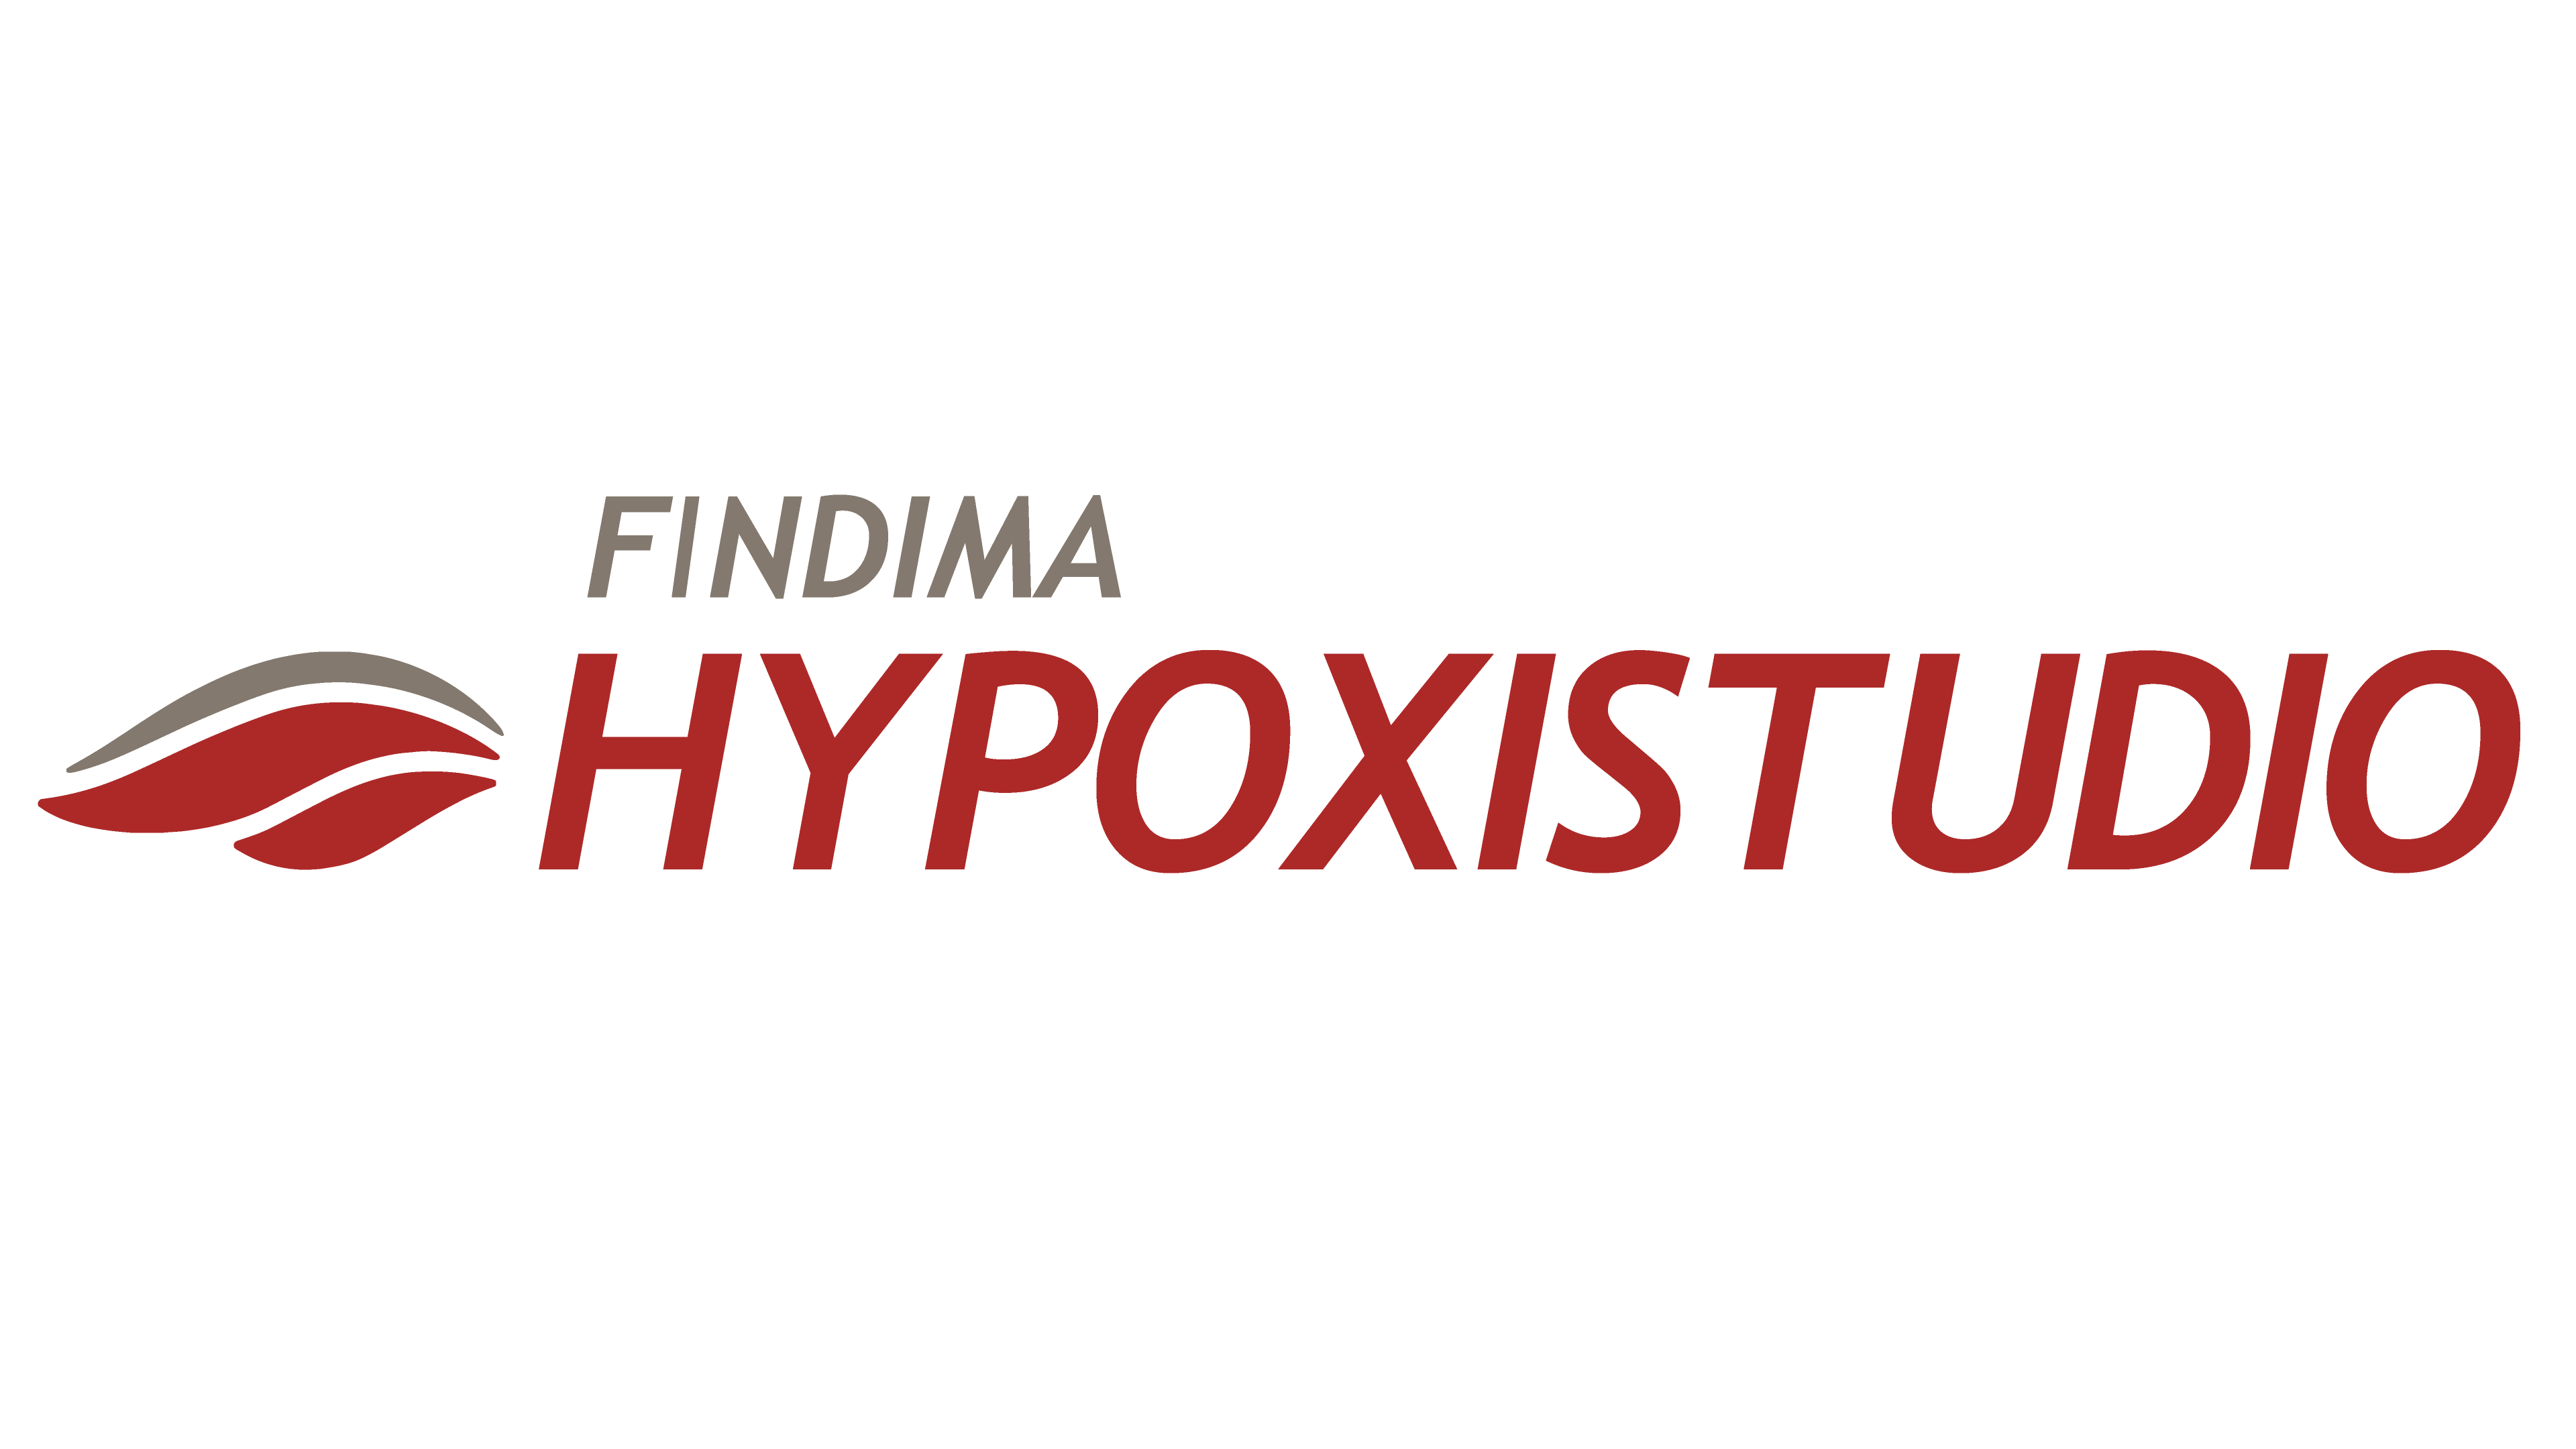 HYPOXISTUDIO